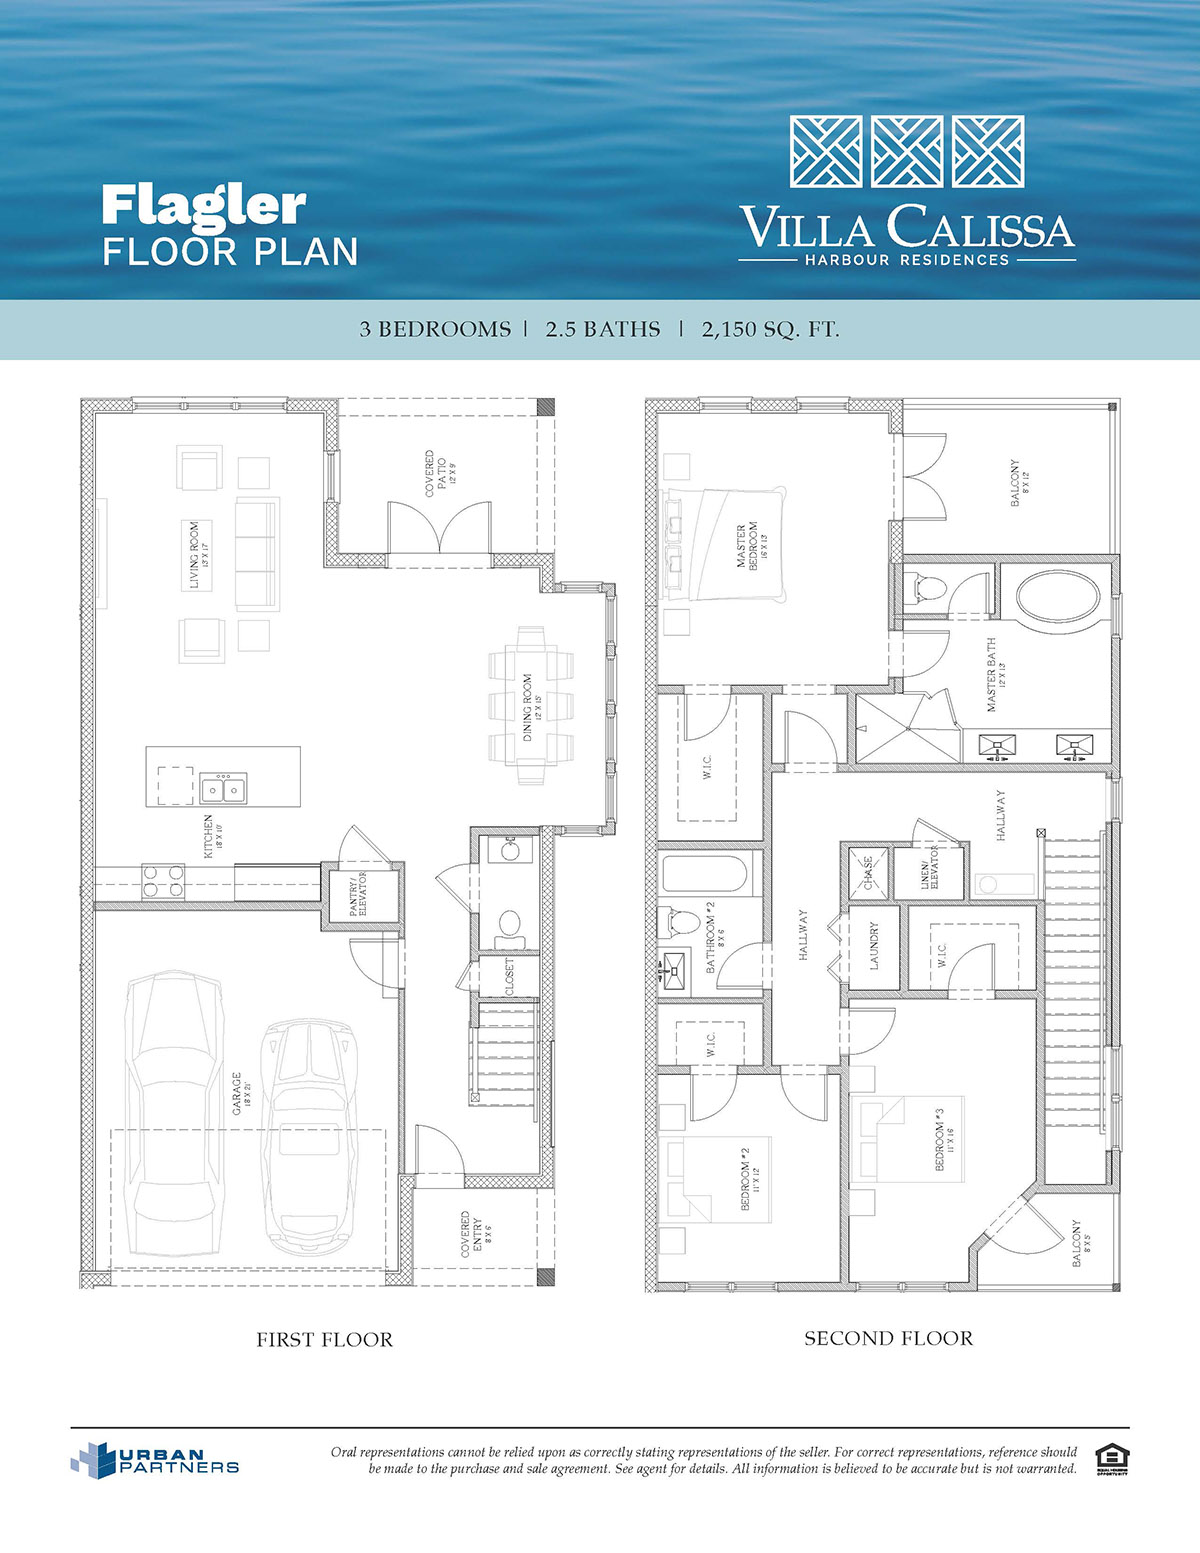 Flagler floor plan at Villa Calissa